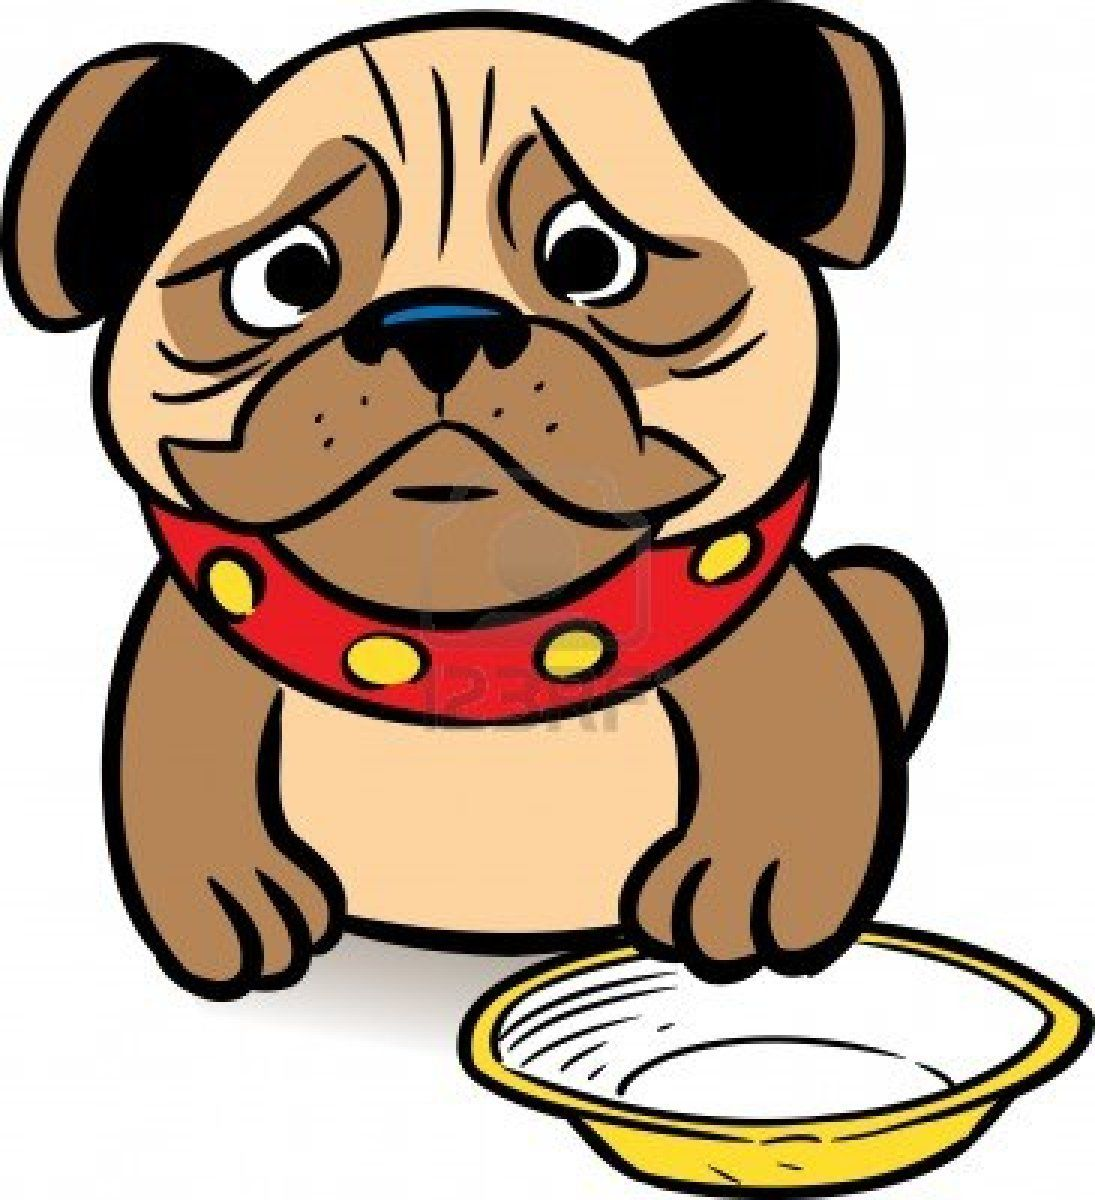 the picture shows a sad puppy pug asks a meal in a bowl illustration rh pinterest co uk